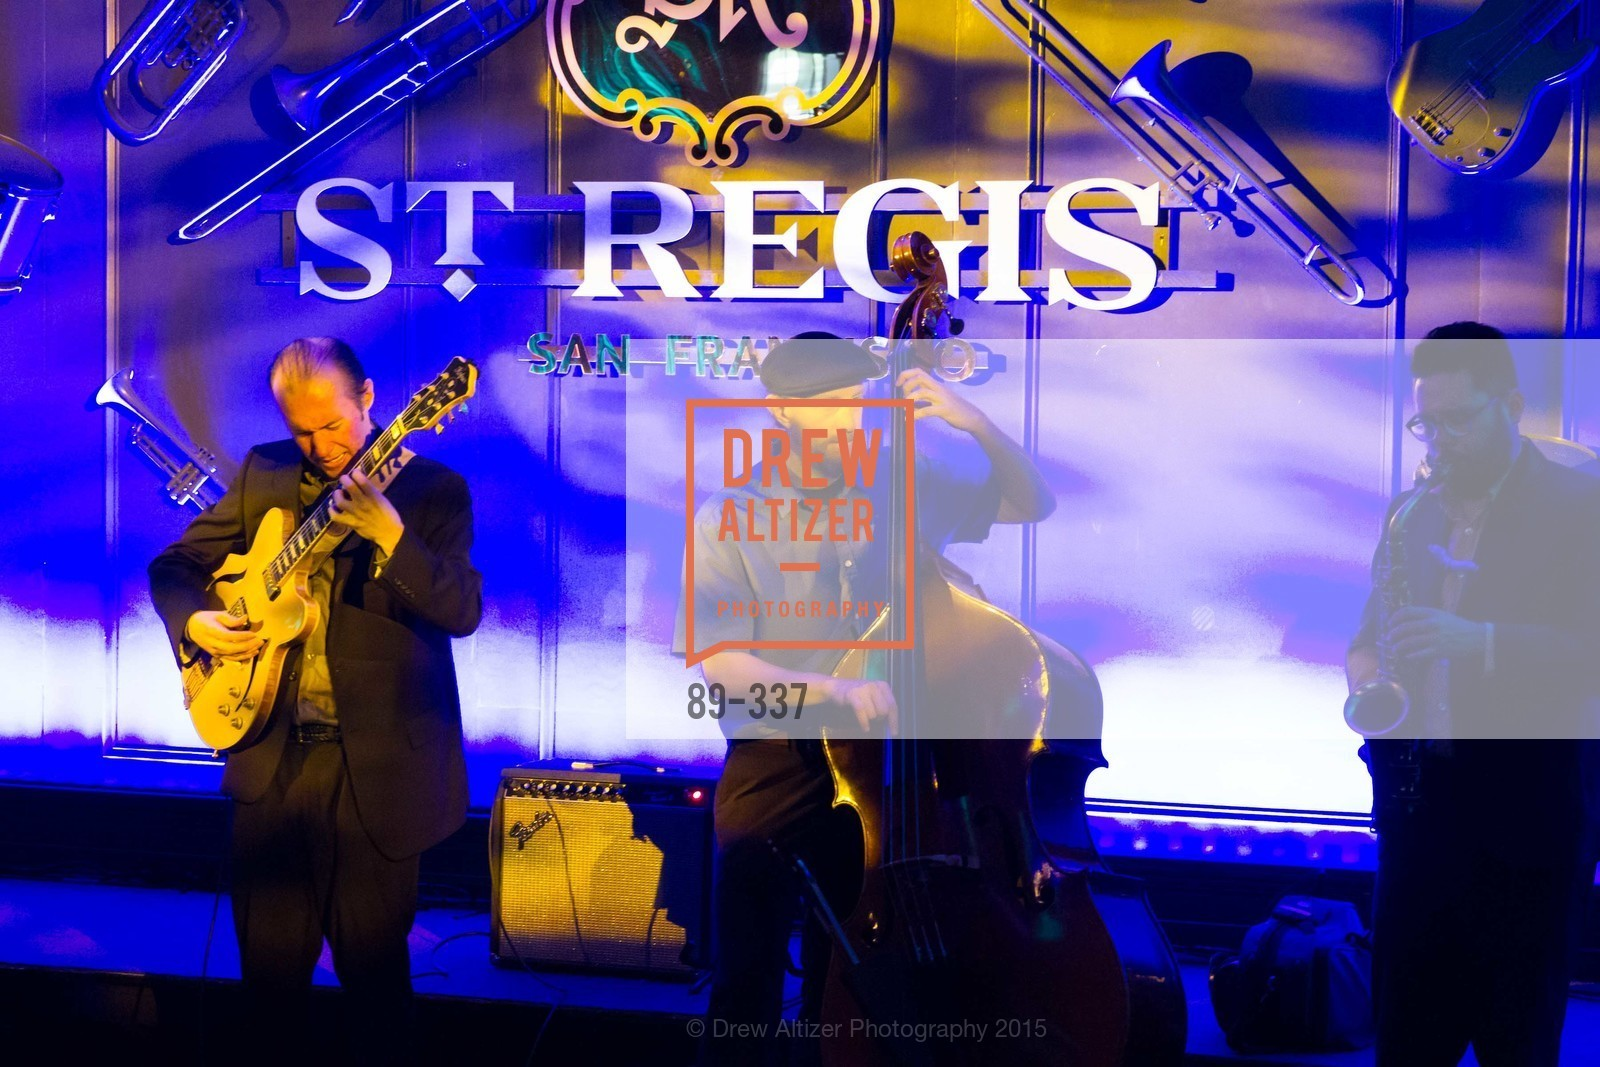 Performers, Jazz Legends At St. Regis Presents Jamie Cullum, St. Regis, October 3rd, 2015,Drew Altizer, Drew Altizer Photography, full-service agency, private events, San Francisco photographer, photographer california